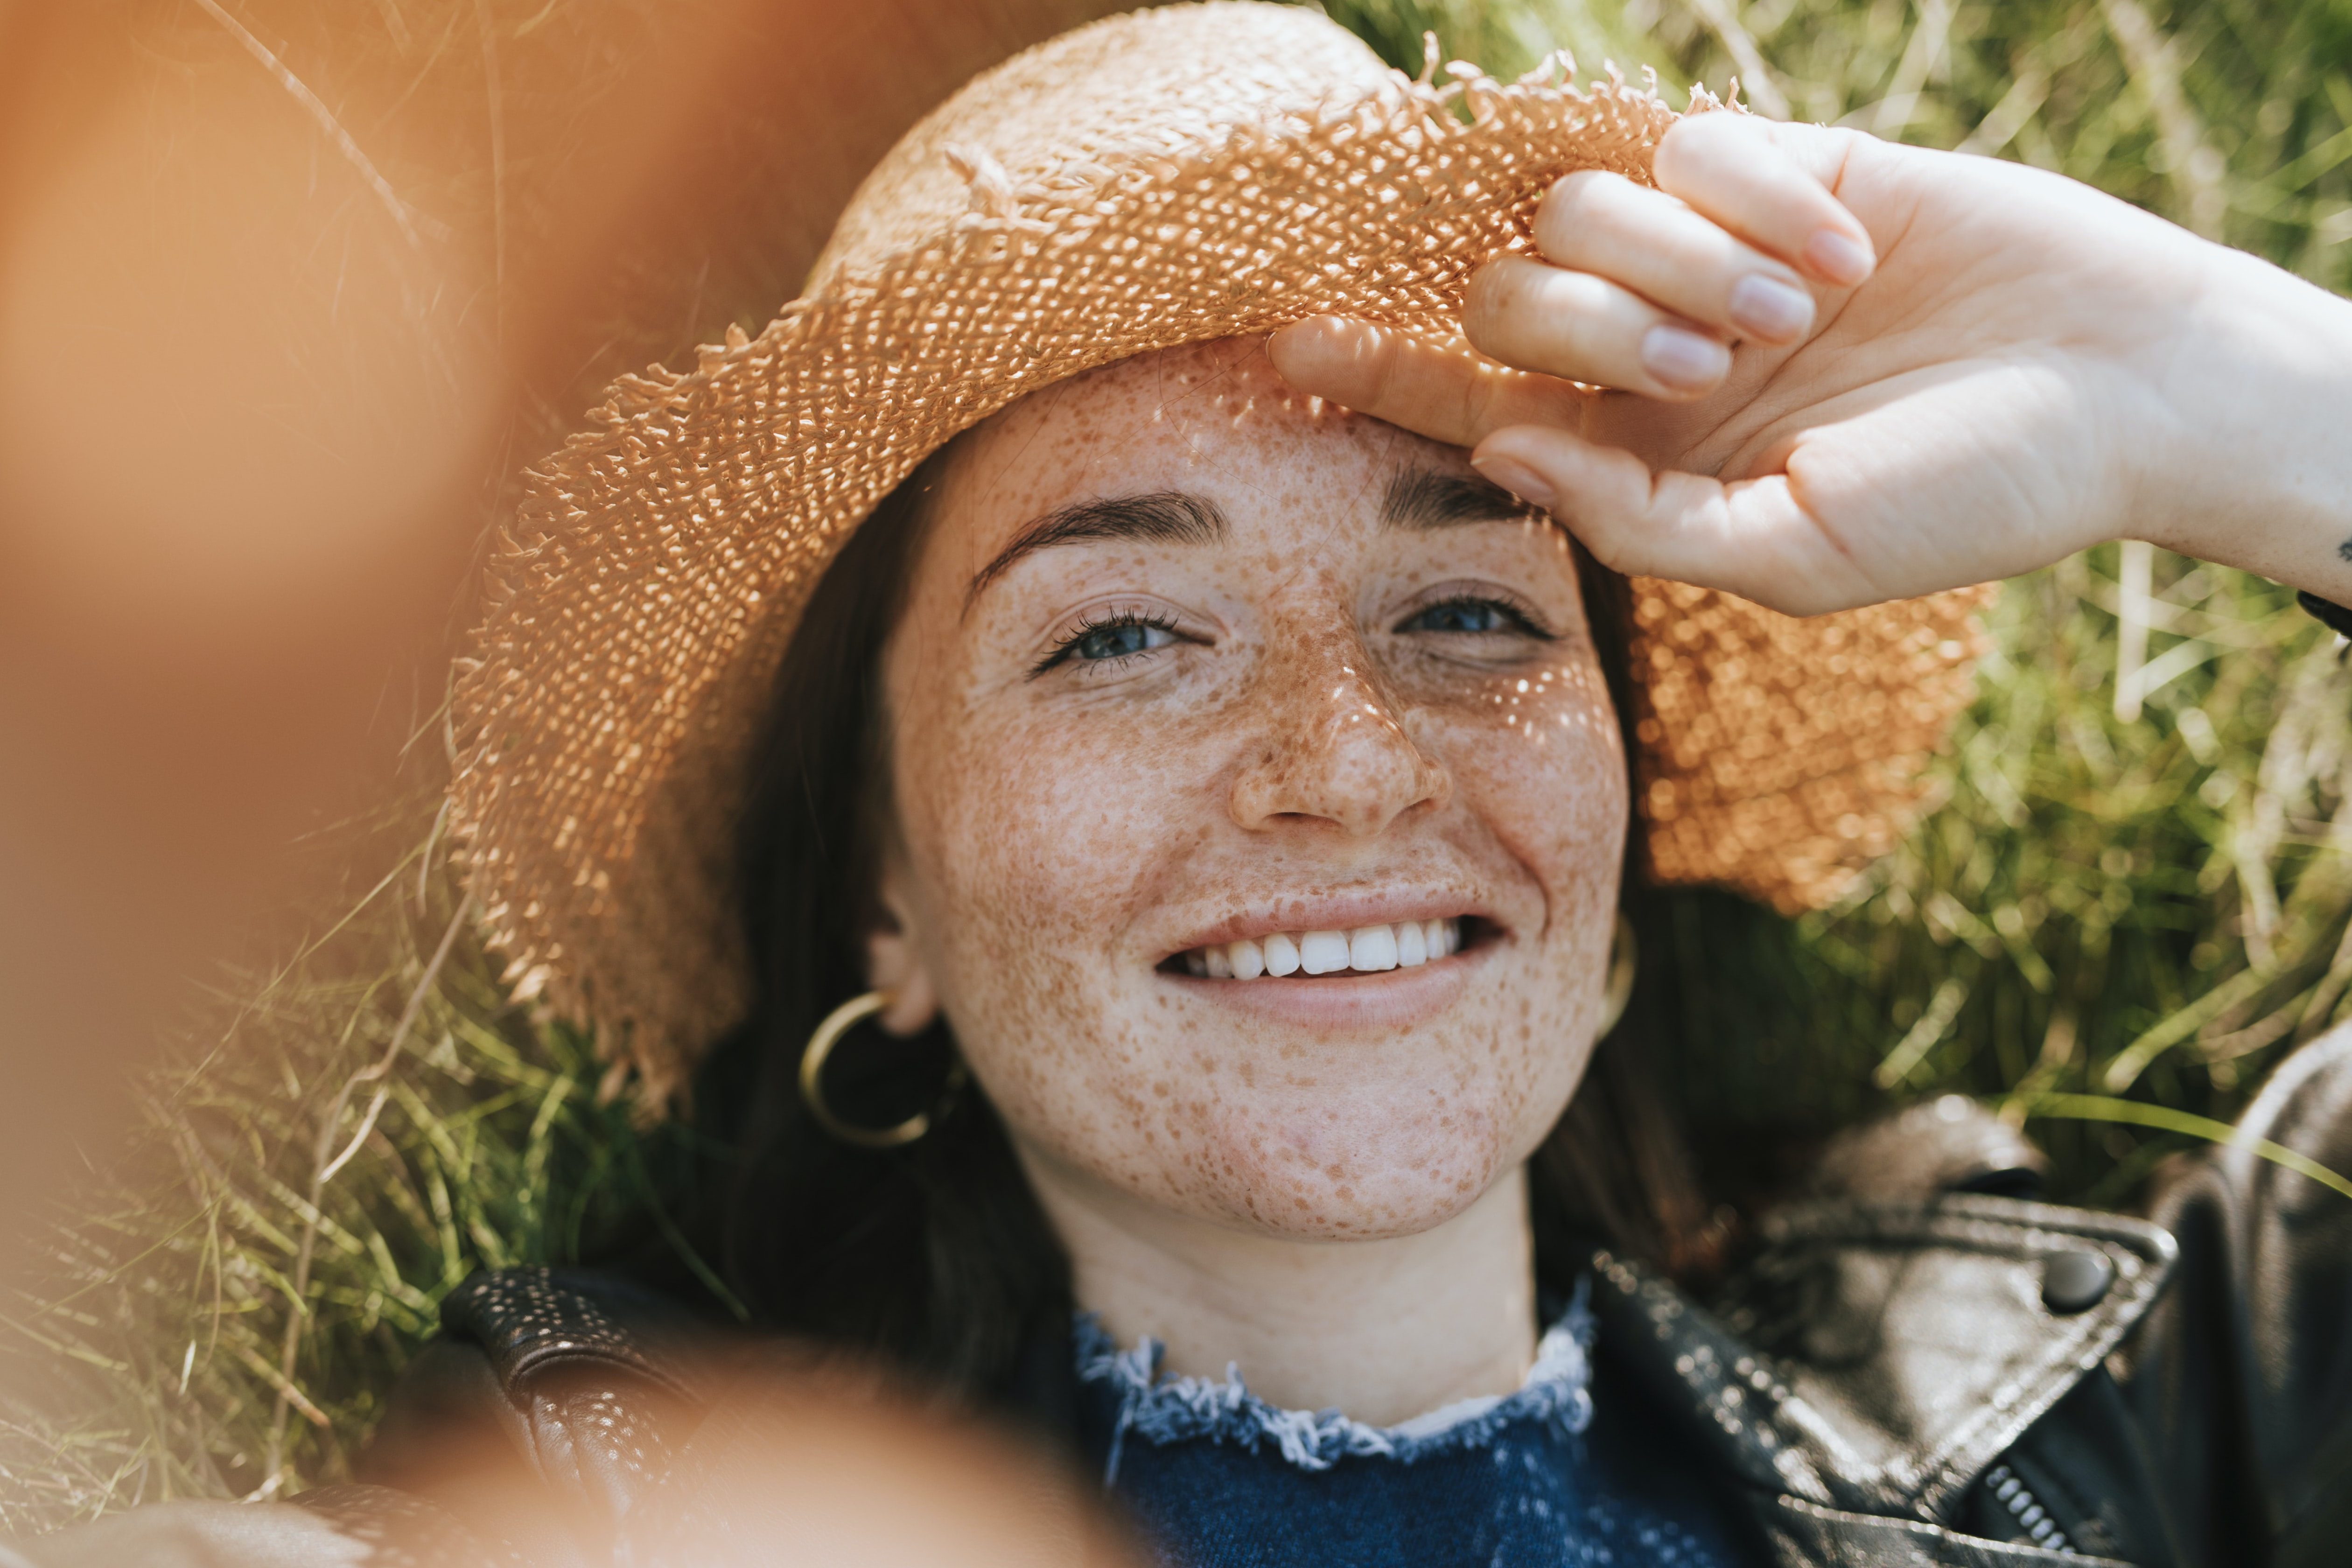 woman wearing sun hat while lying on grass